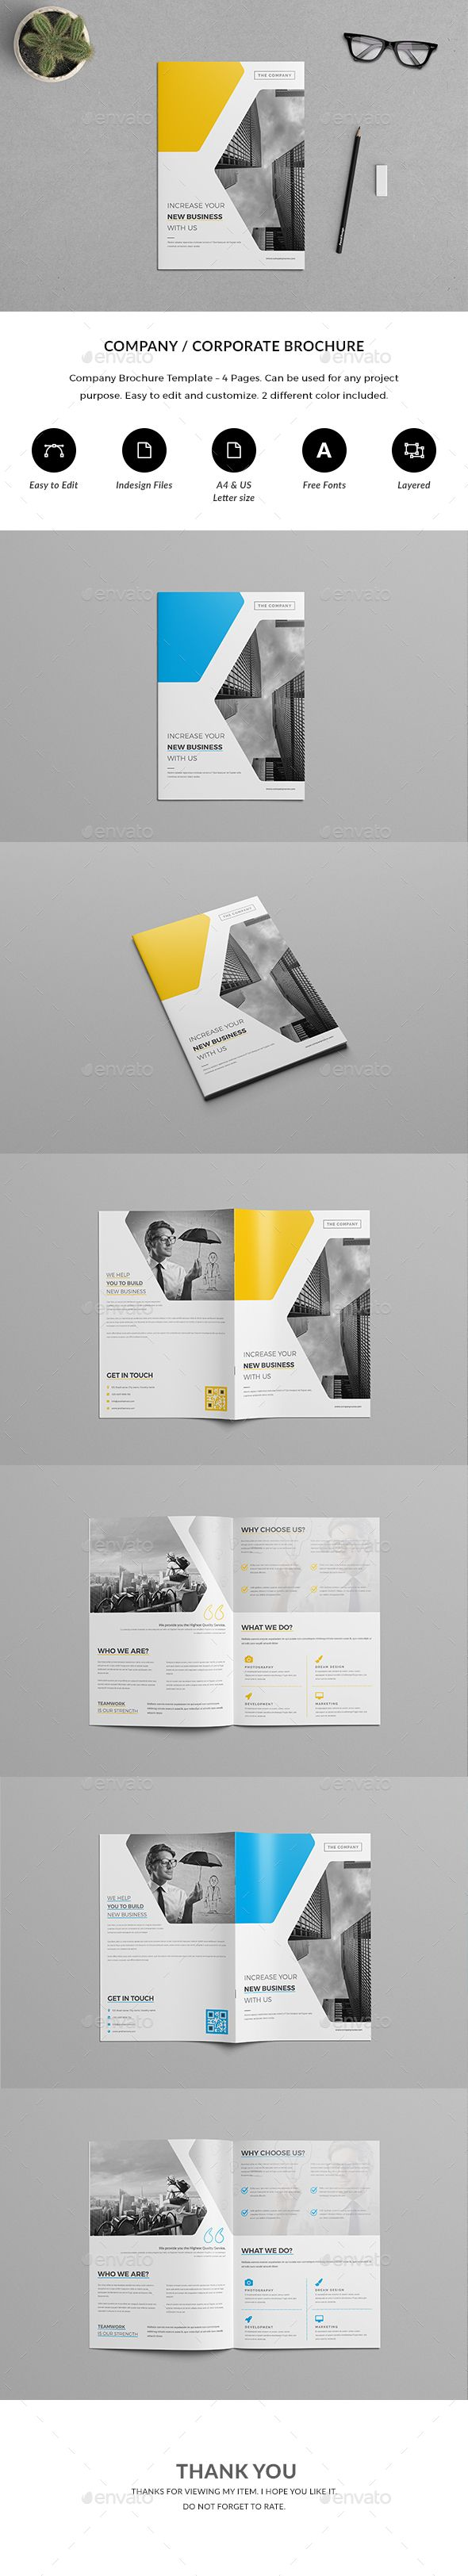 Lovely 1 Page Resumes Small 1 Week Calendar Template Solid 1099 Agreement Template 11 Vuze Search Templates Youthful 15 Year Old Resume Example Black2 Week Notice Templates 25  Best Ideas About Brochure Size On Pinterest | Portfolio Design ..